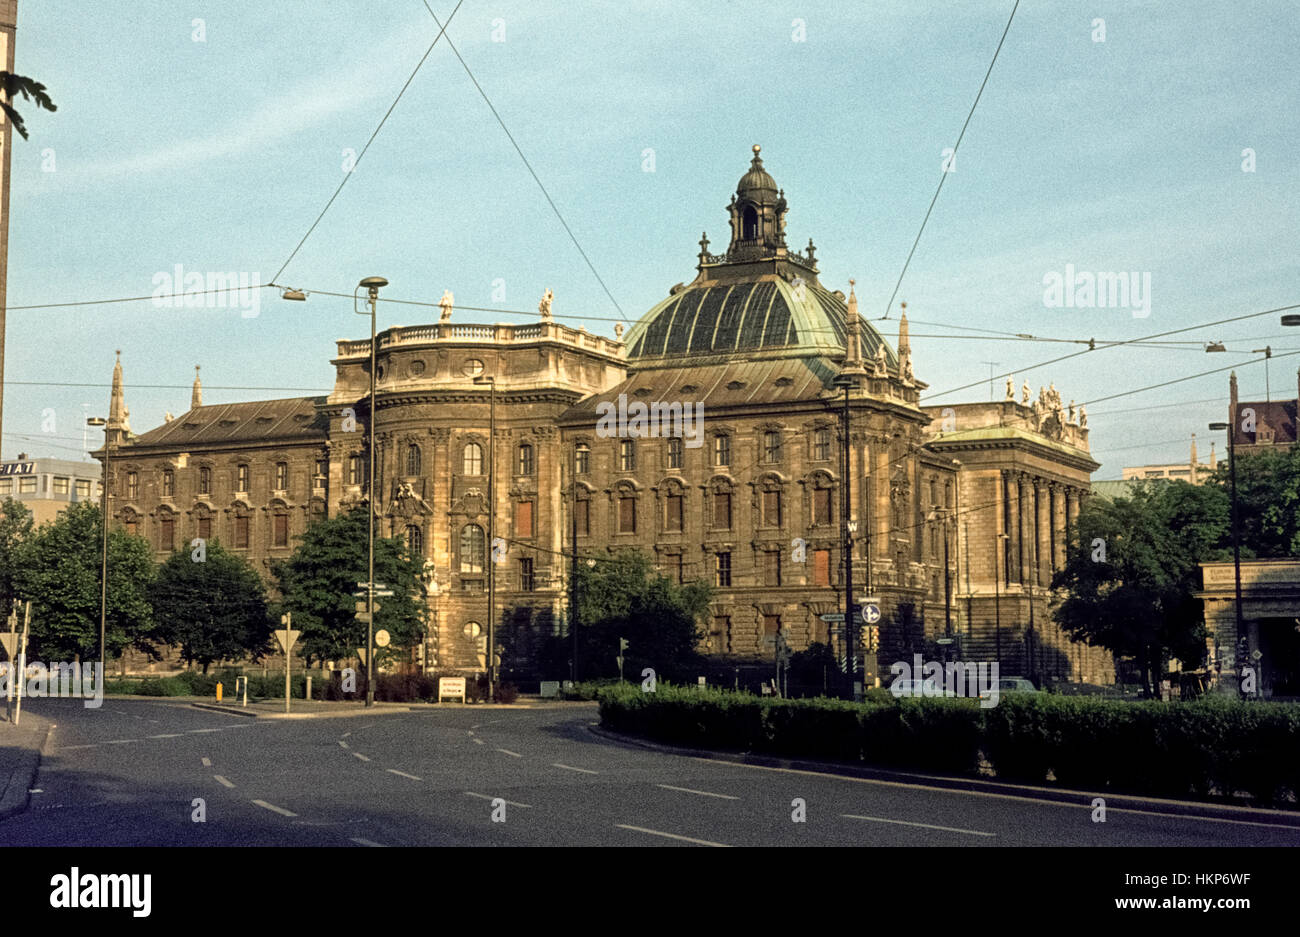 Der Münchner Justizpalast in den 1970igern. The Munich Palace of Justice in den 1970s. - Stock Image